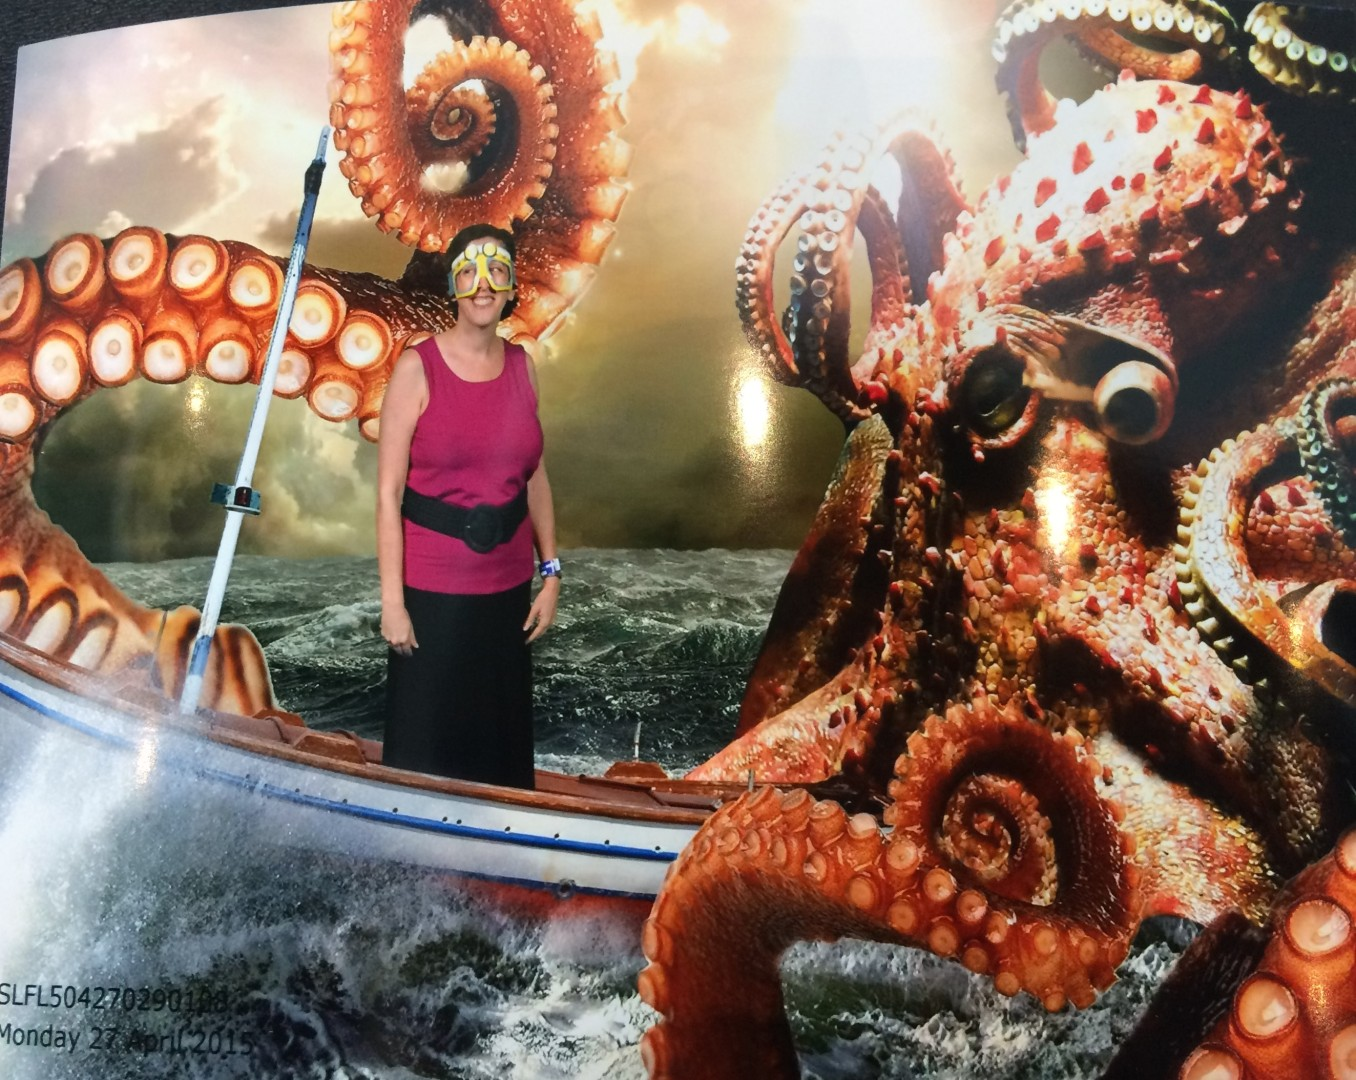 This photo (silly cardboard mask provided by staff) was taken in front of a green screen, then digitally transposed to incorporate this kraken sea monster.